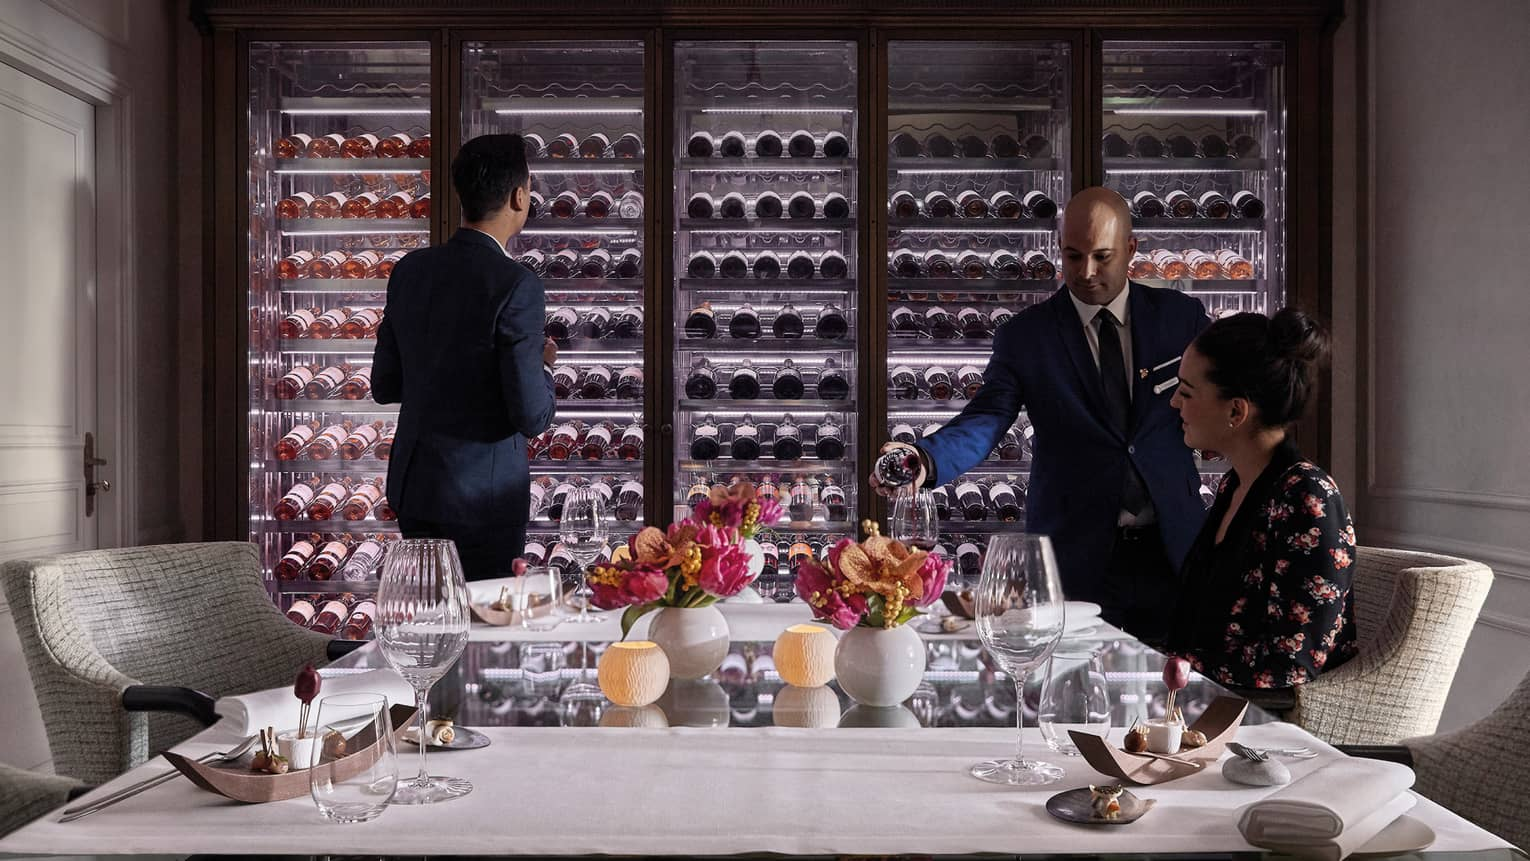 Man scans glass cellar as waitstaff pours wine in glass for woman at table